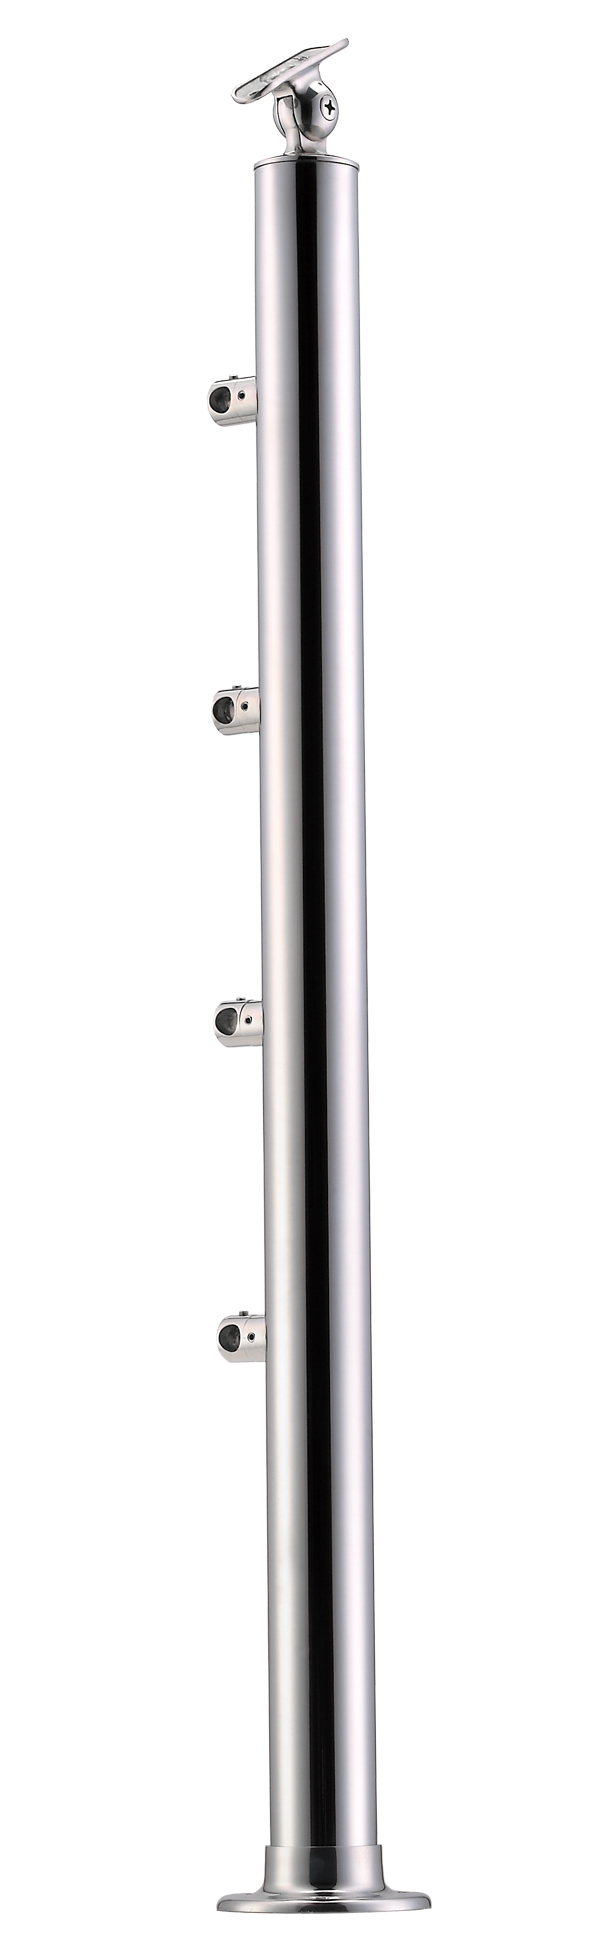 Stainless Steel Balustrade Posts - Tubular - SS:2020456A